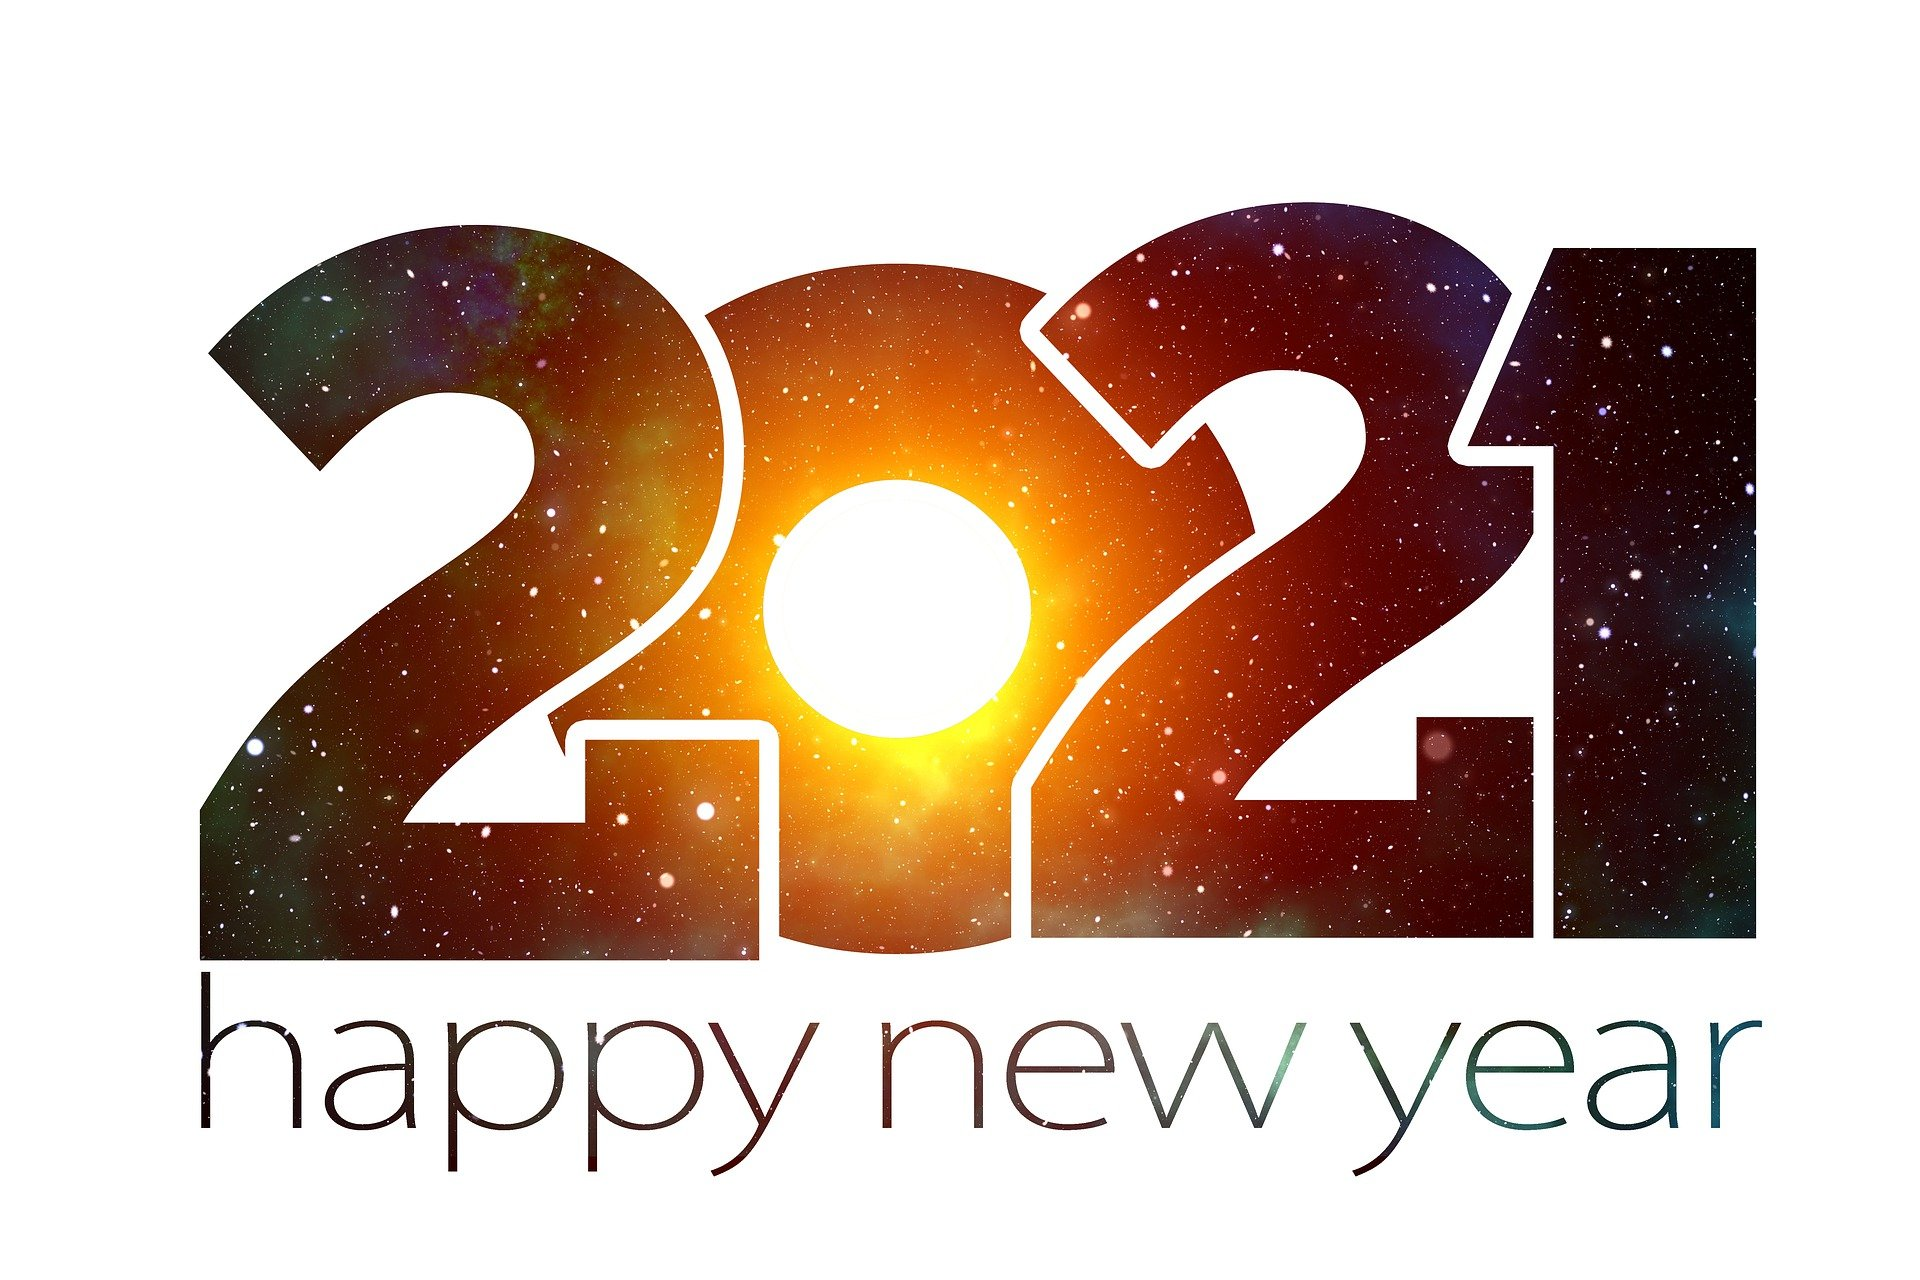 New Year Wishes and Quotes to Welcome 2021